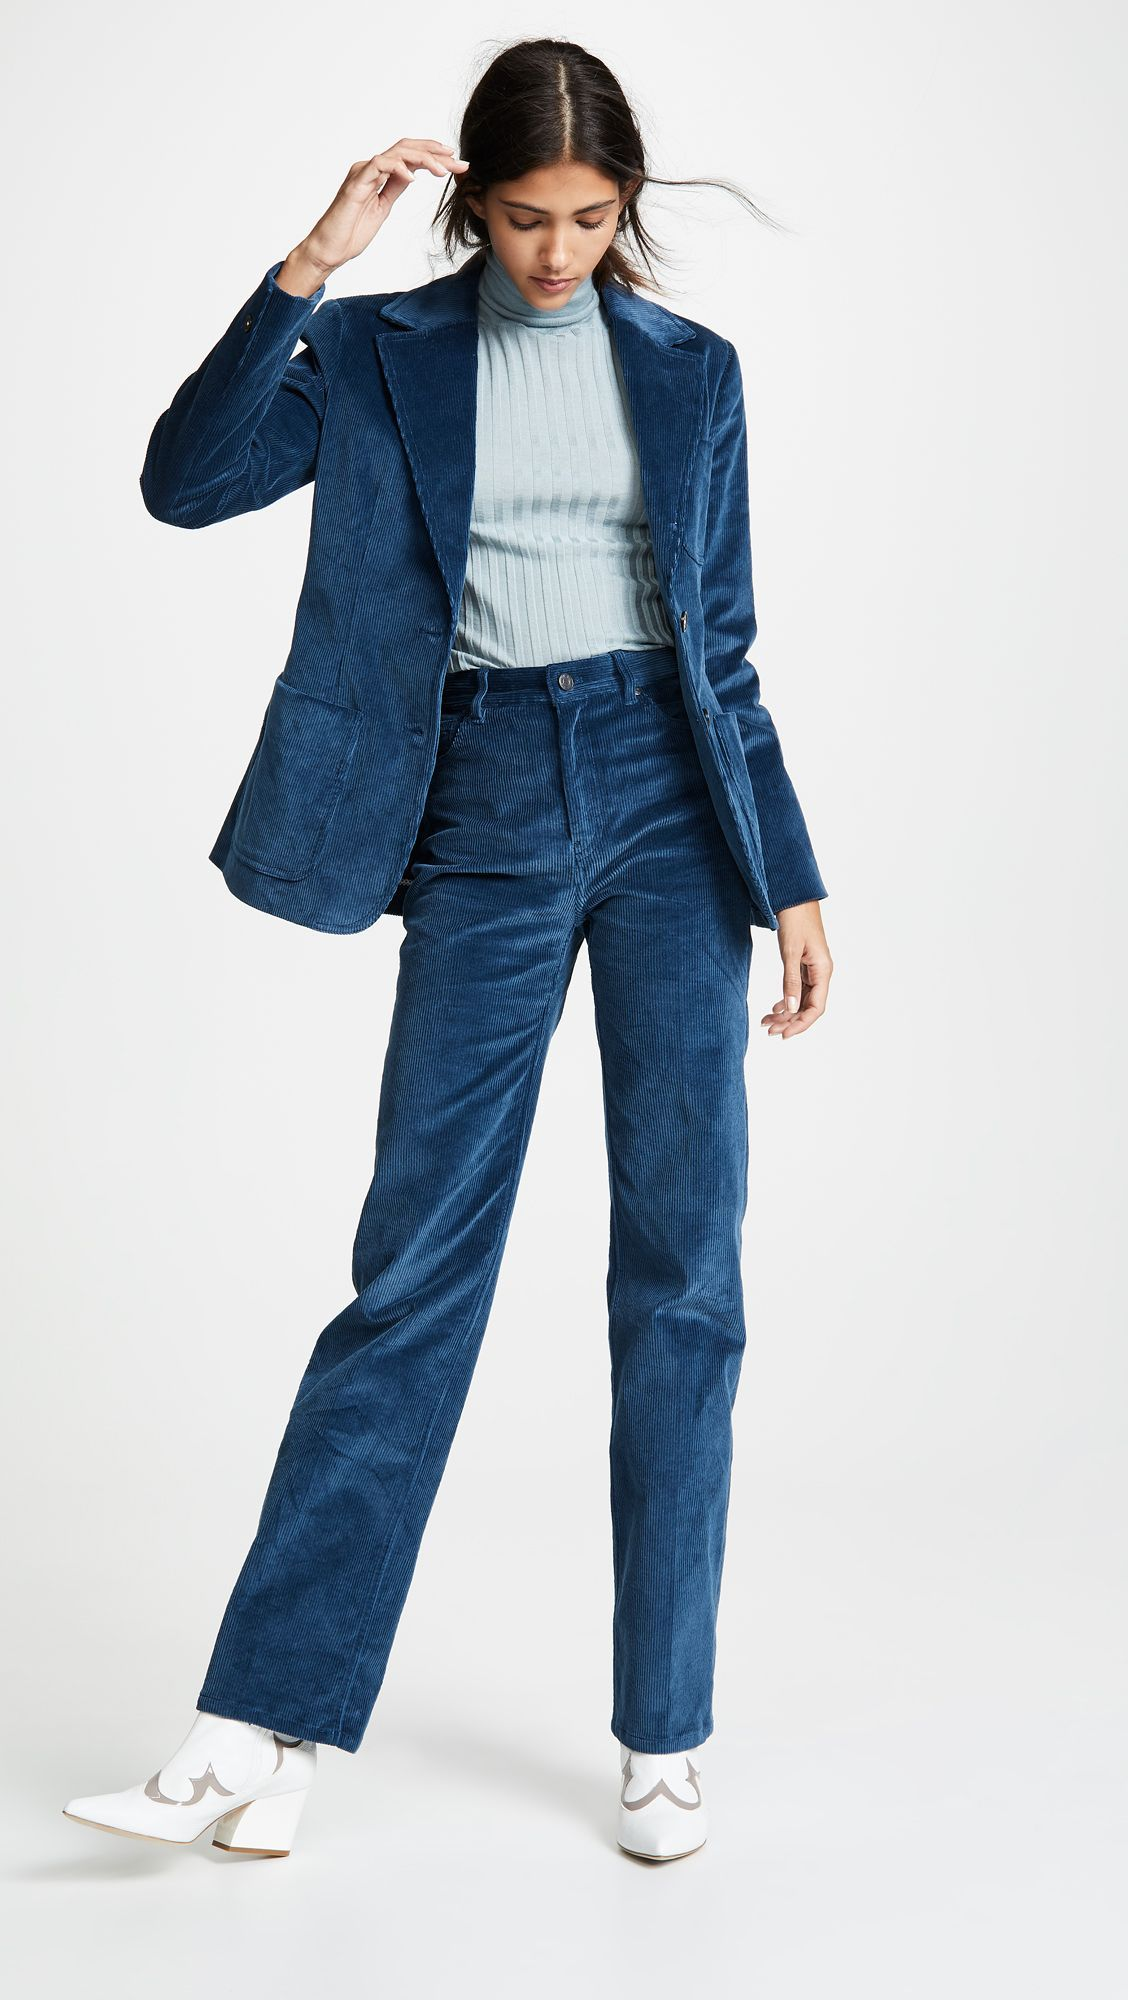 15 Of The Best Women S Suits For All Budgets Bodies Occasions